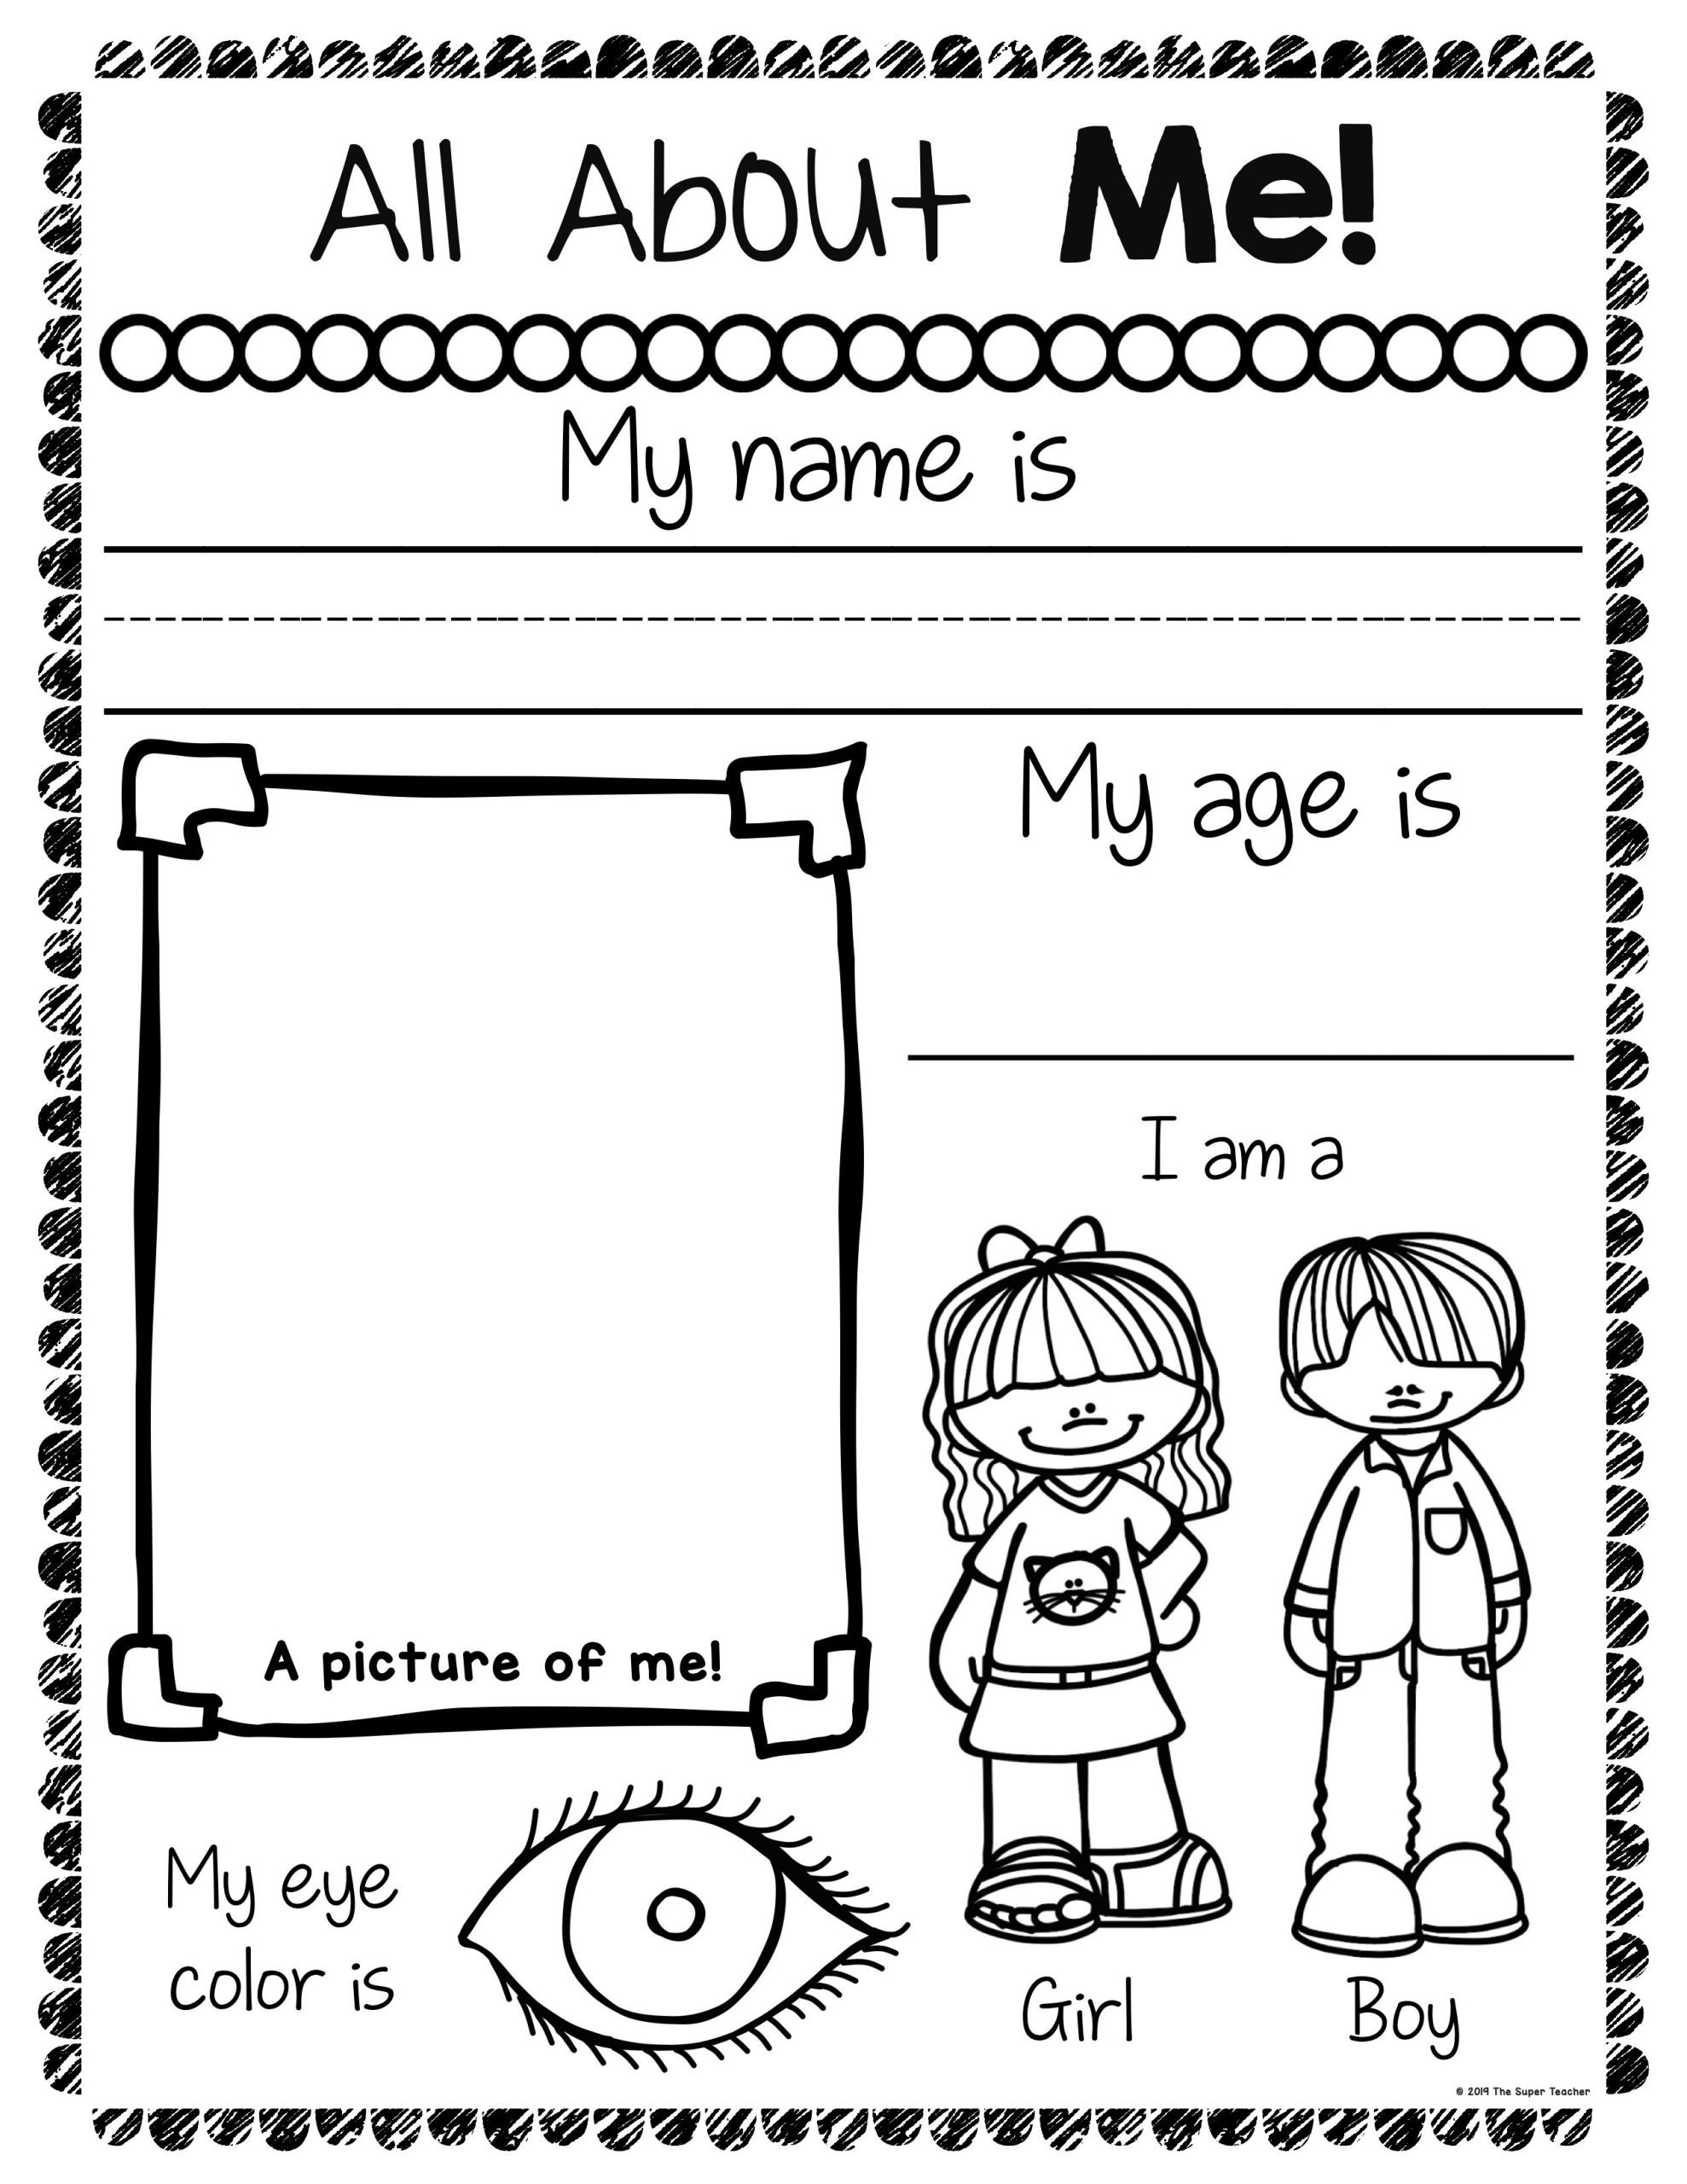 All About Me Kindergarten Worksheet All About Me Worksheets